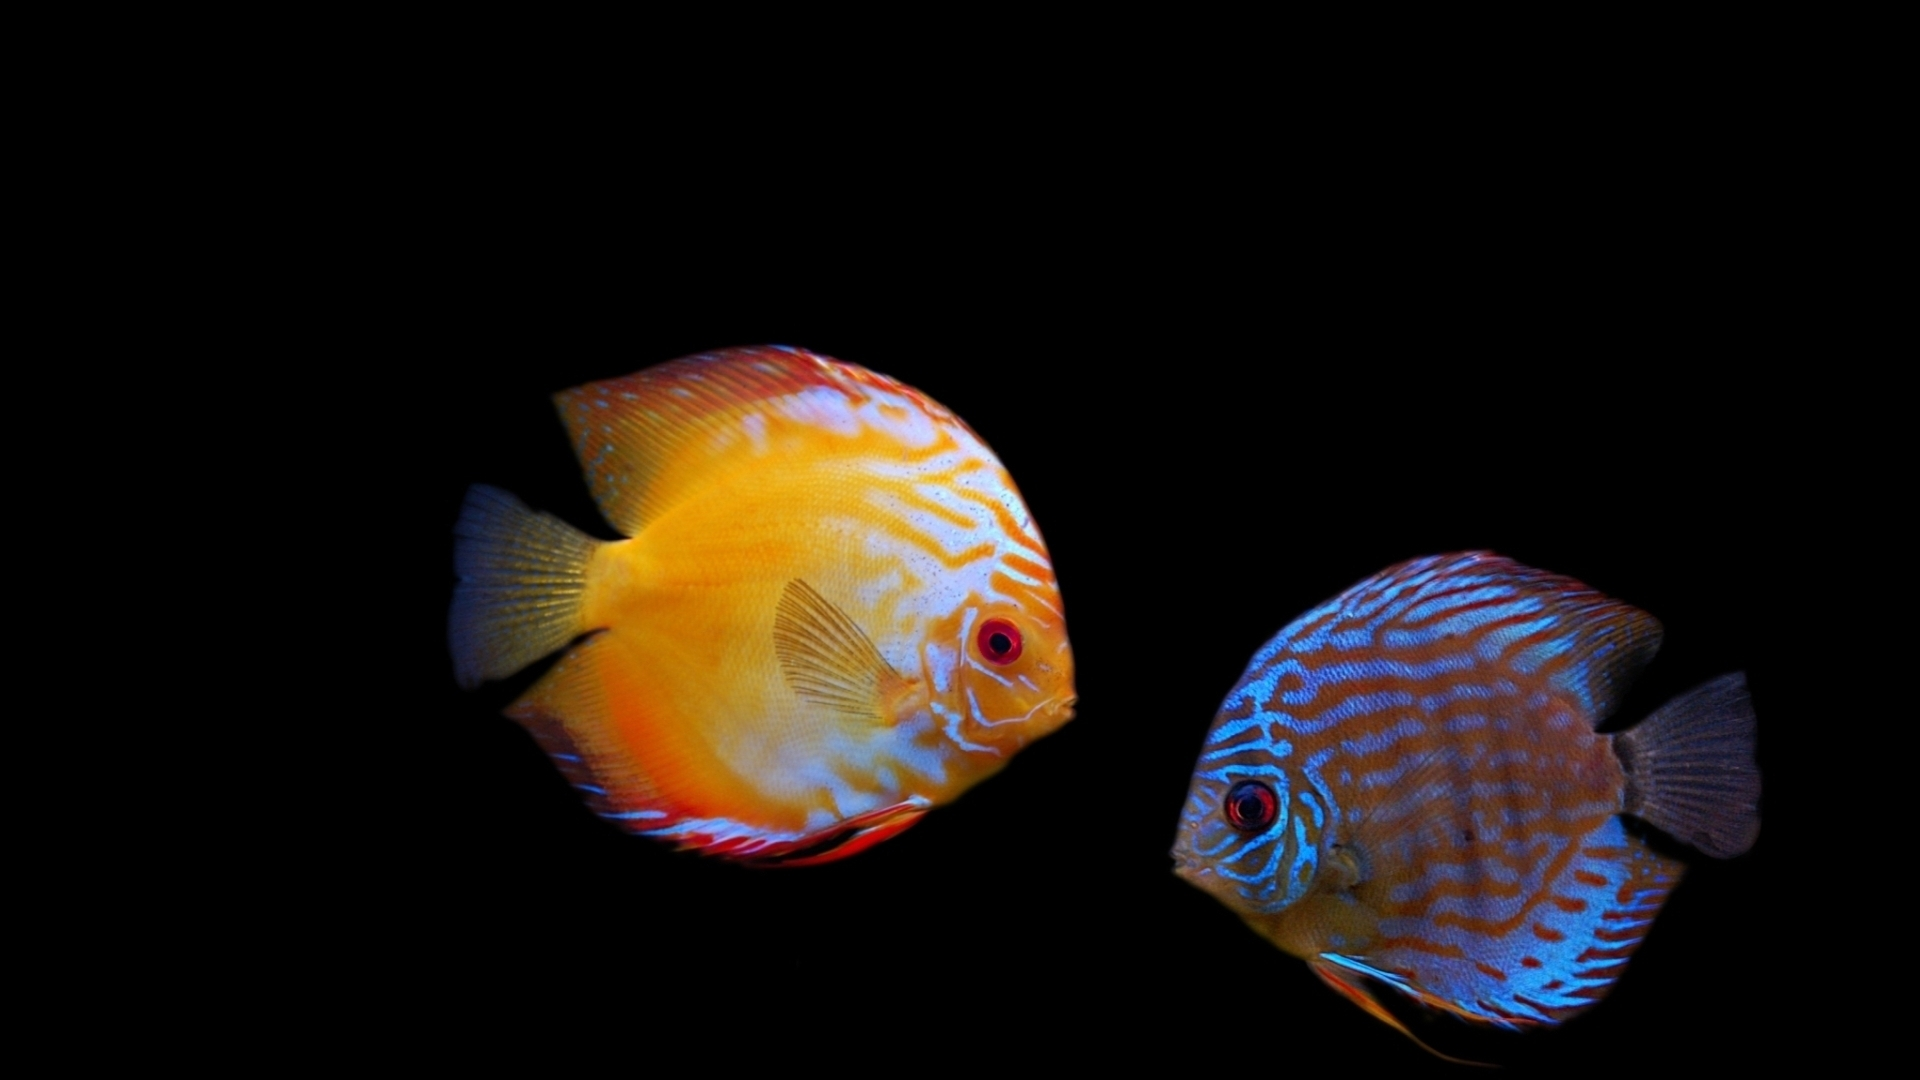 11537 download wallpaper Animals, Fishes screensavers and pictures for free